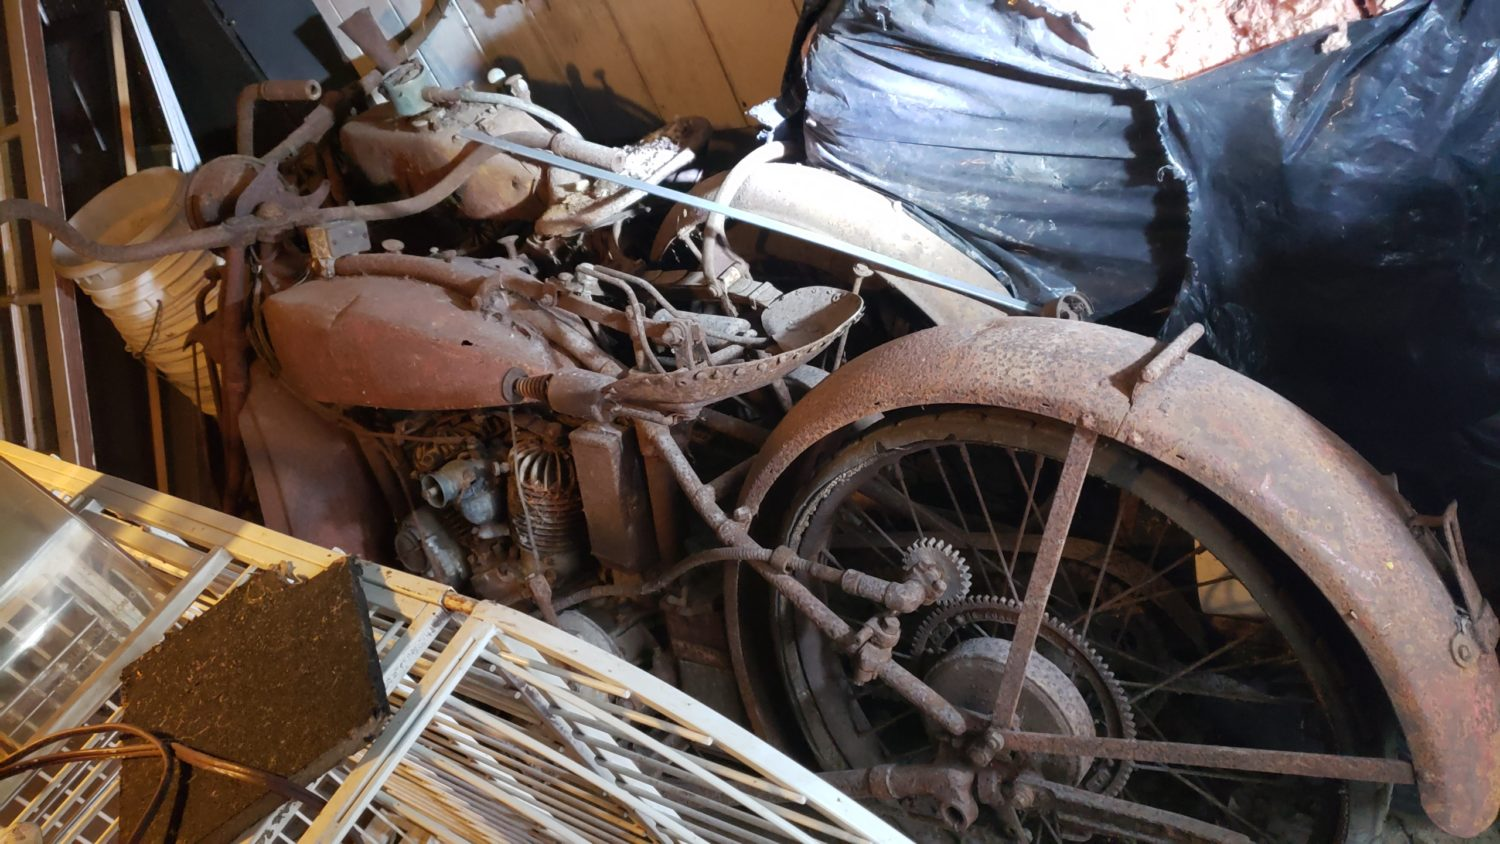 AMAZING Indian Motorcycle Hoard, Race Cars, Collector Car, Collectibles & More!  - image 14